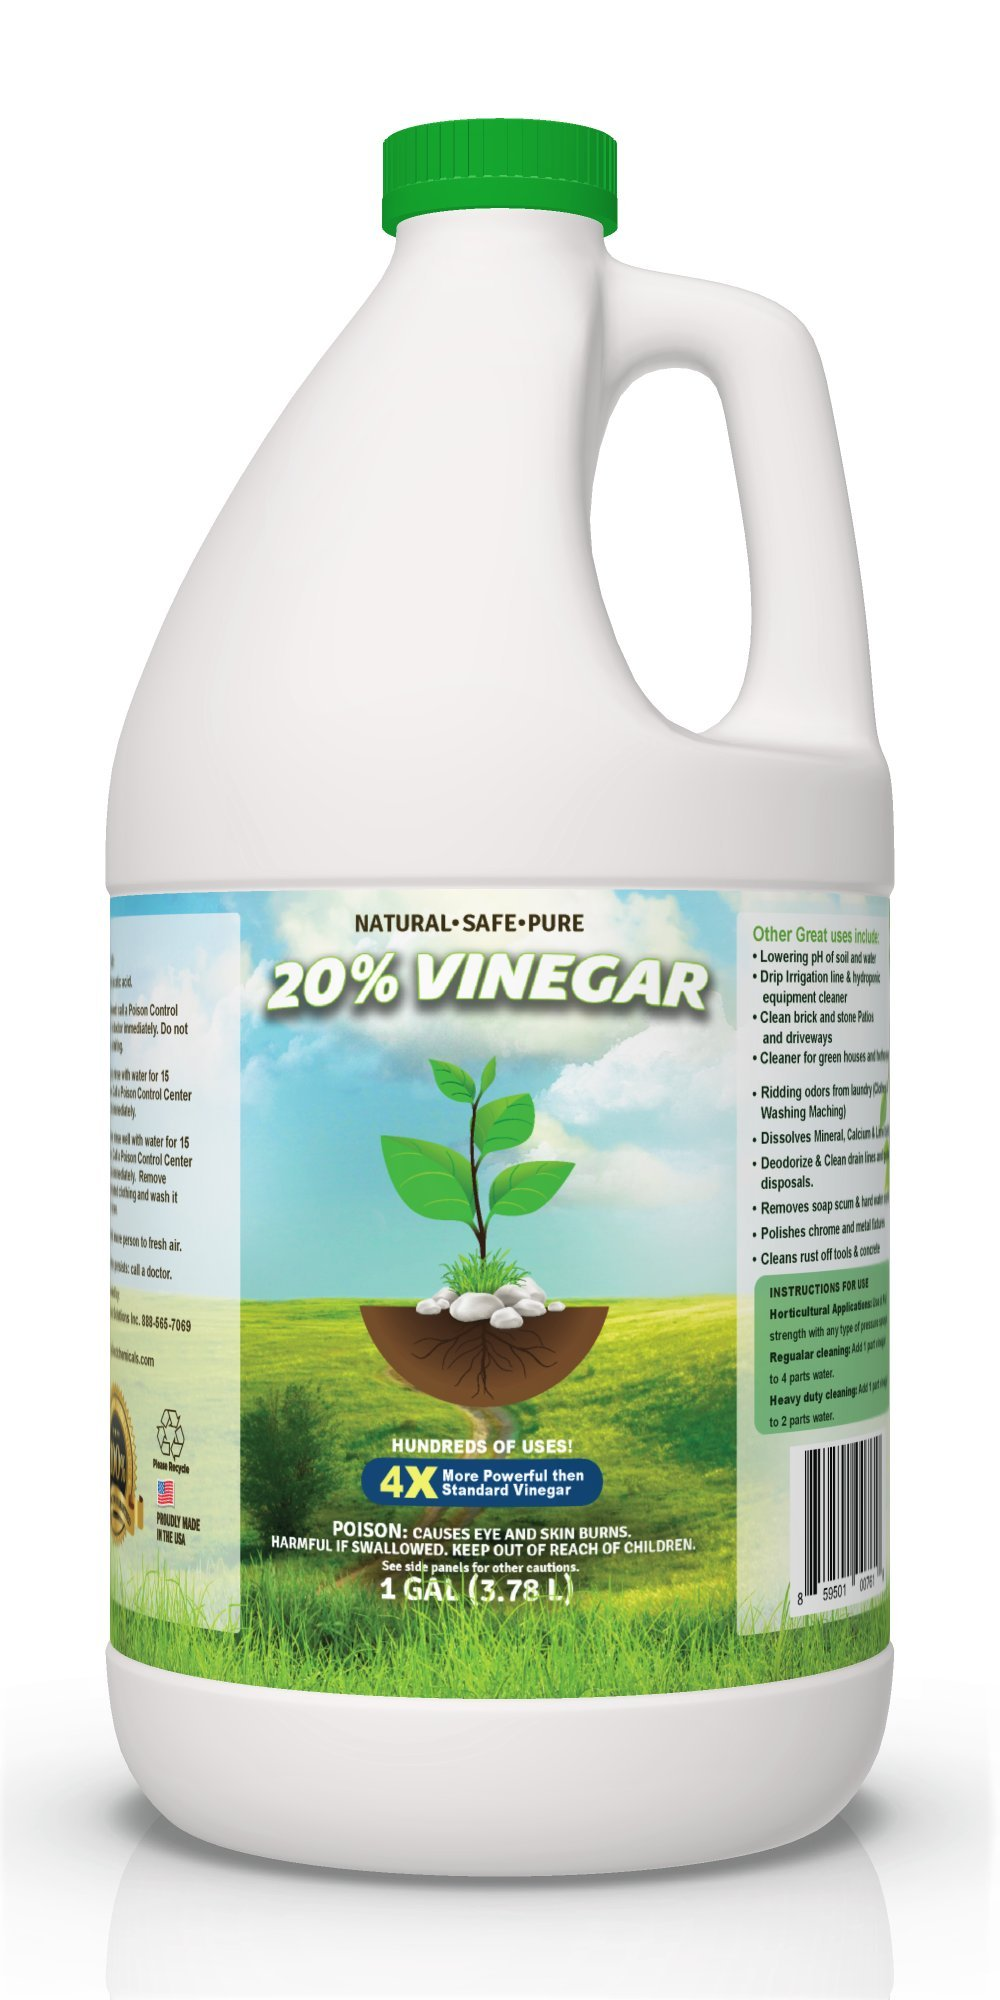 Pure 20% Vinegar - Home&Garden 1 Gallon (Packaging May Vary)